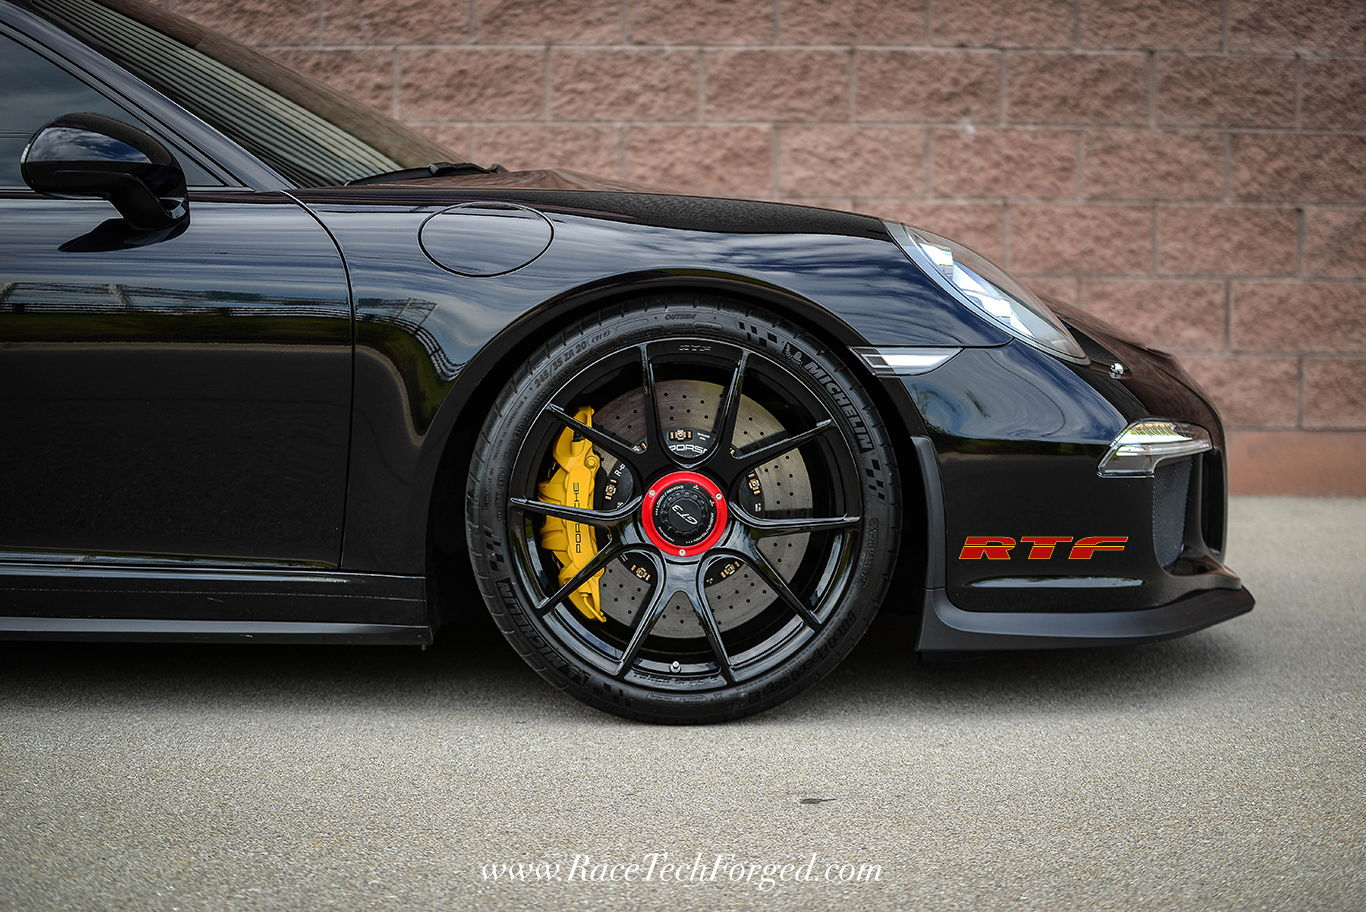 Aftermarket Wheel Options For 991 Gt3 With Pccb S Page 5